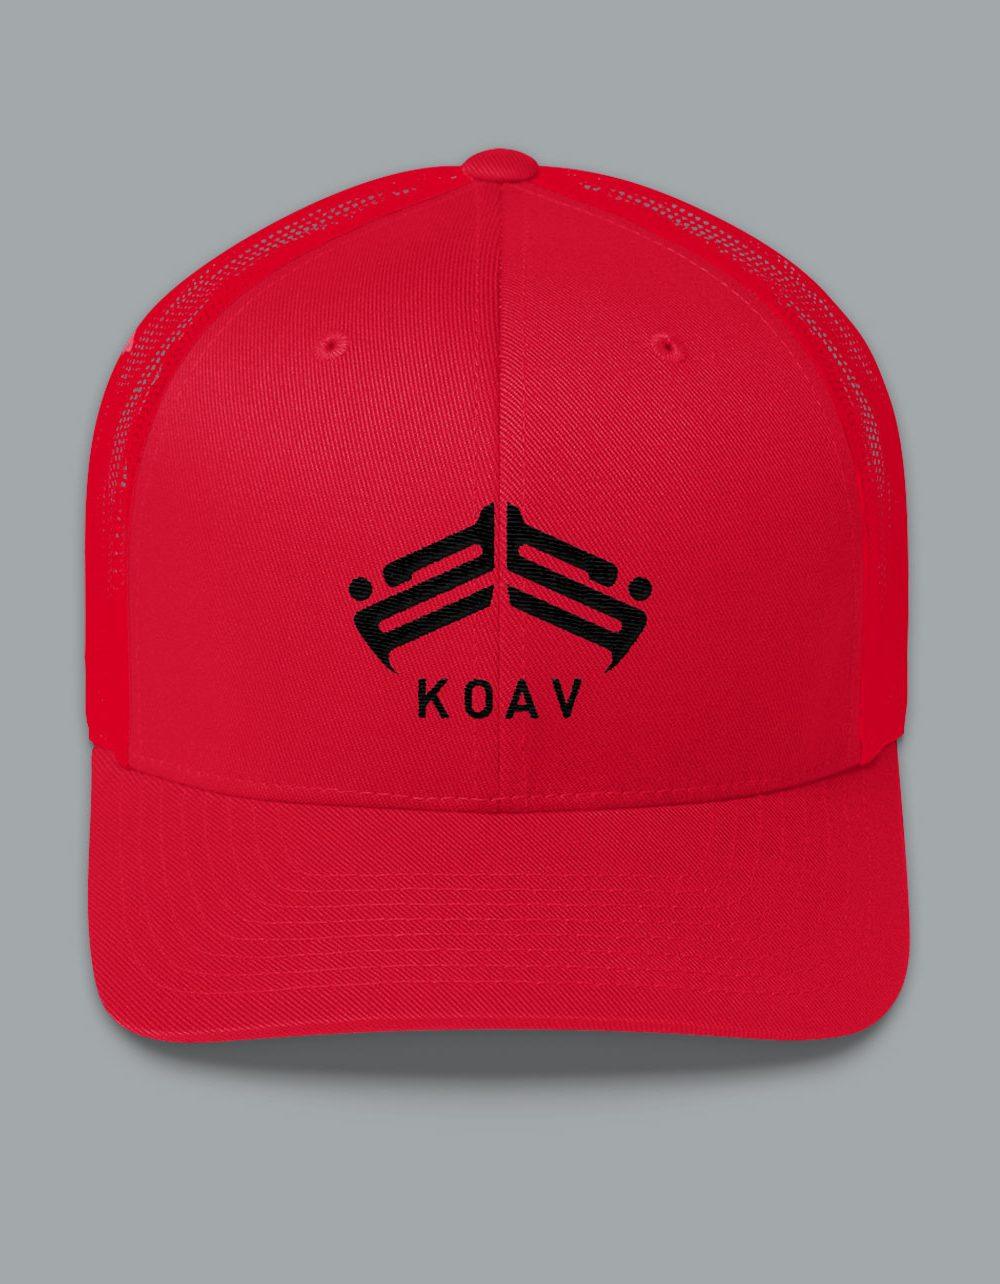 Trucker Snap Back Cap with our KOAV emblem